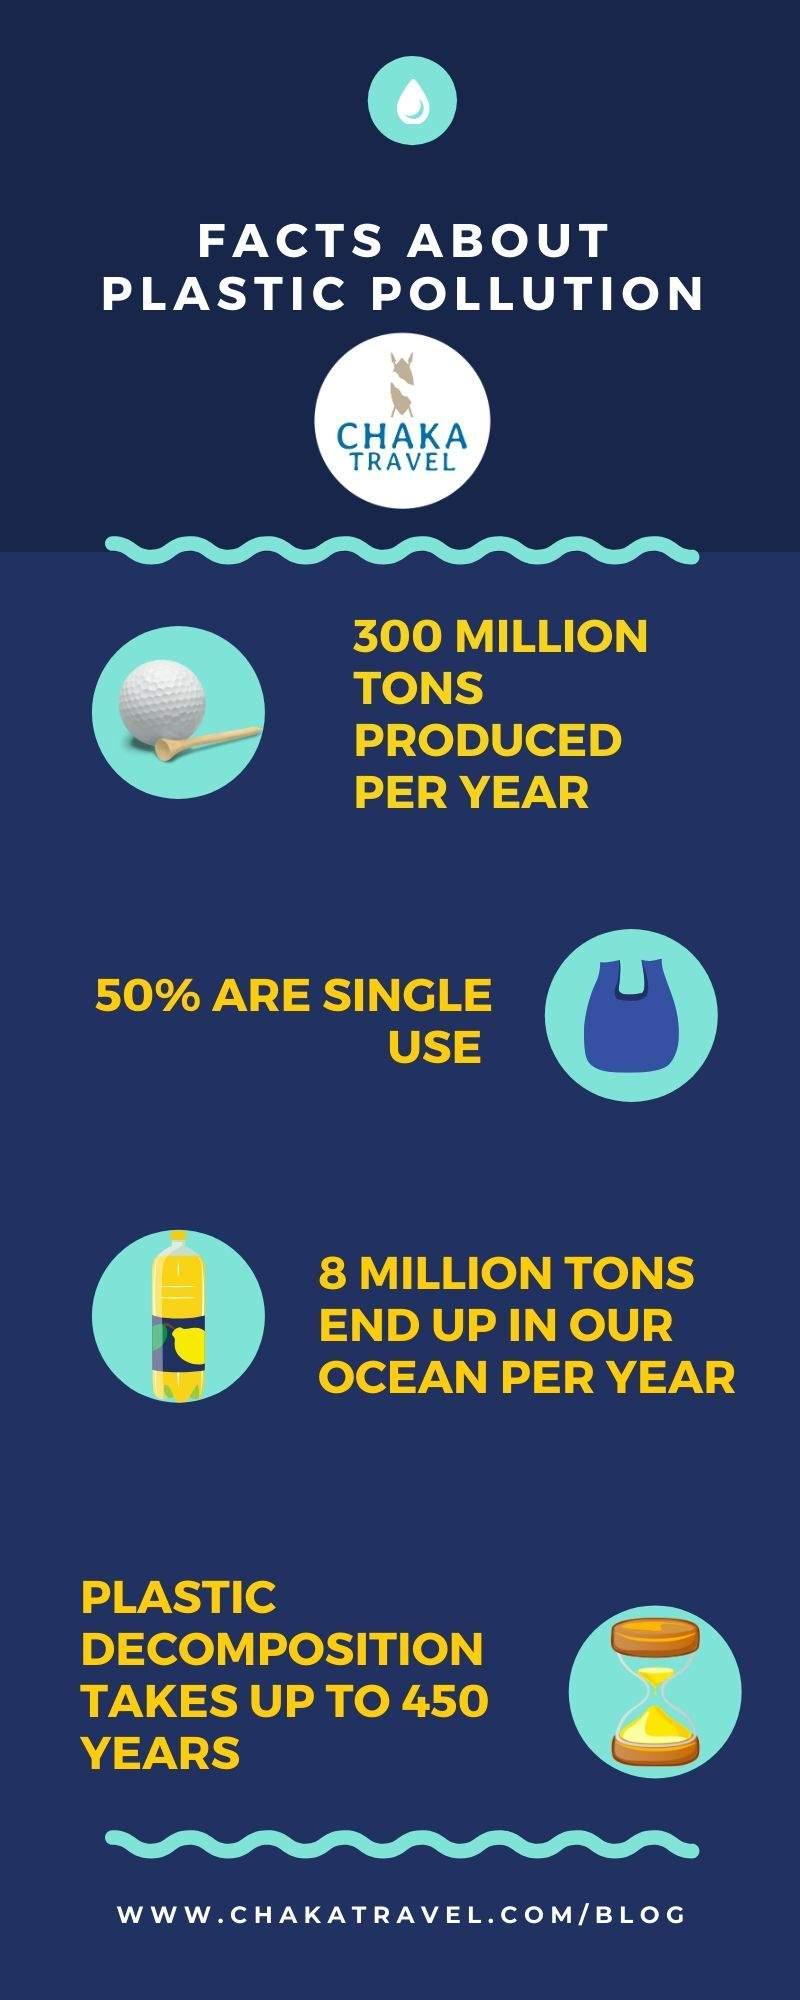 Chaka Yravel Plastic Pollution Facts Infographic